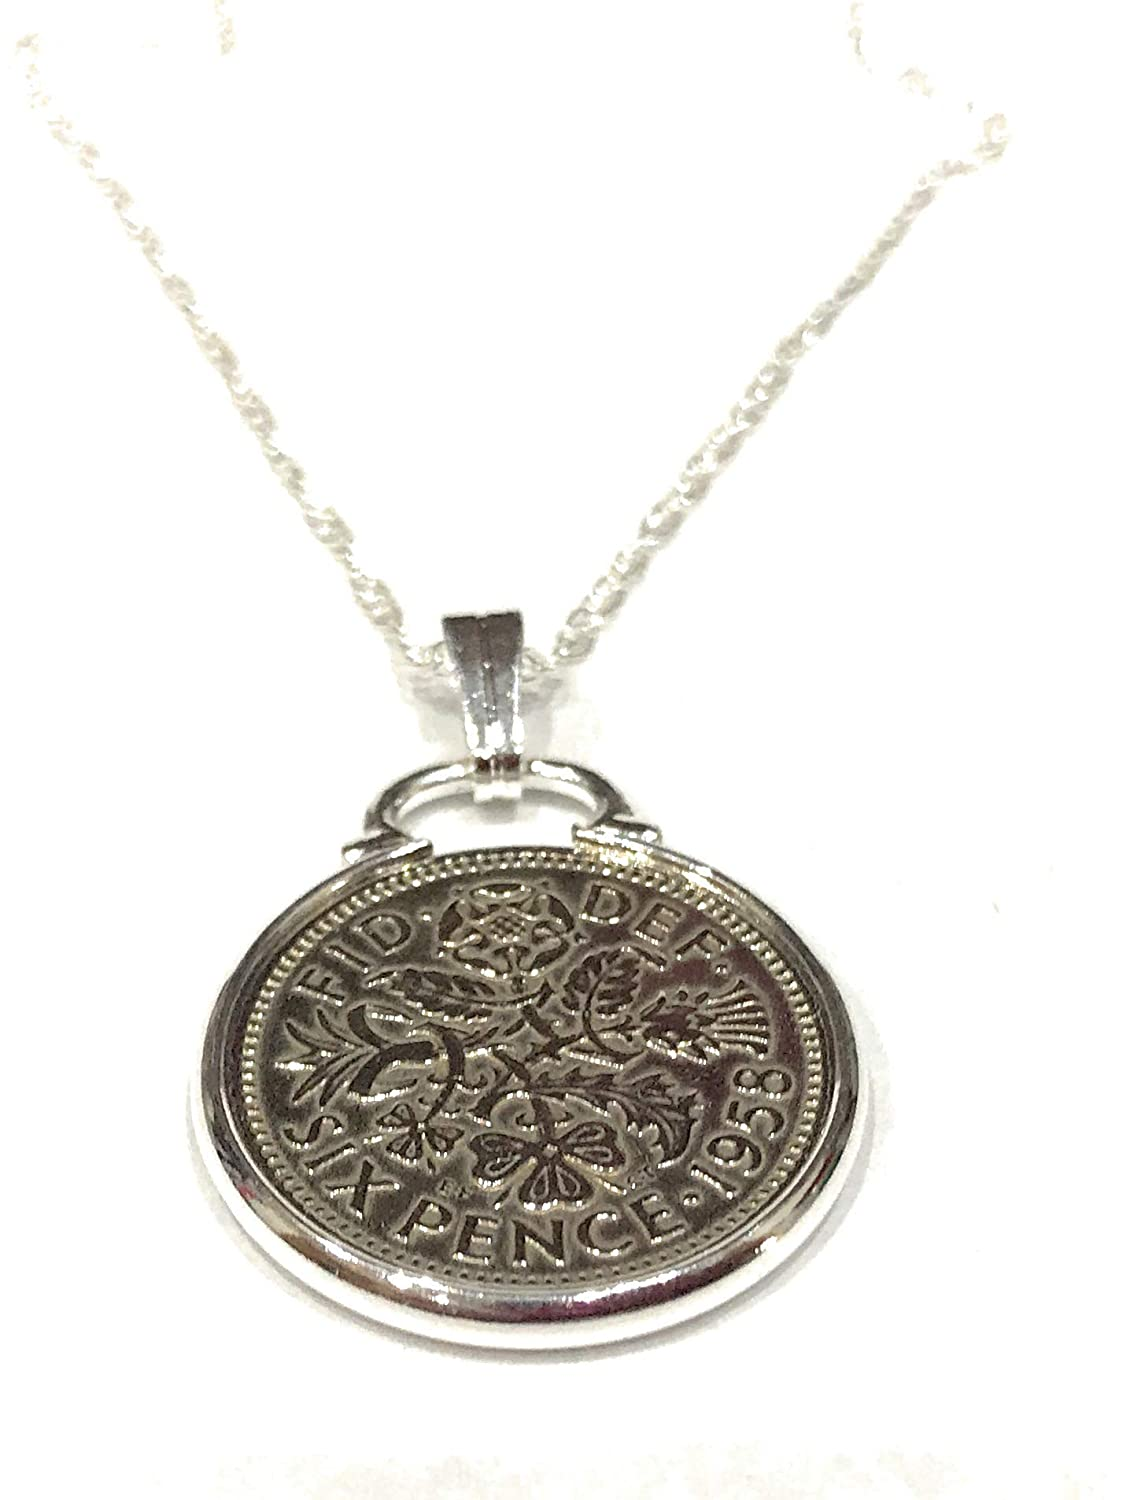 Happy 60th Birthday Fancy Pendant 1959 Lucky sixpence Sterling Silver 18in Chain